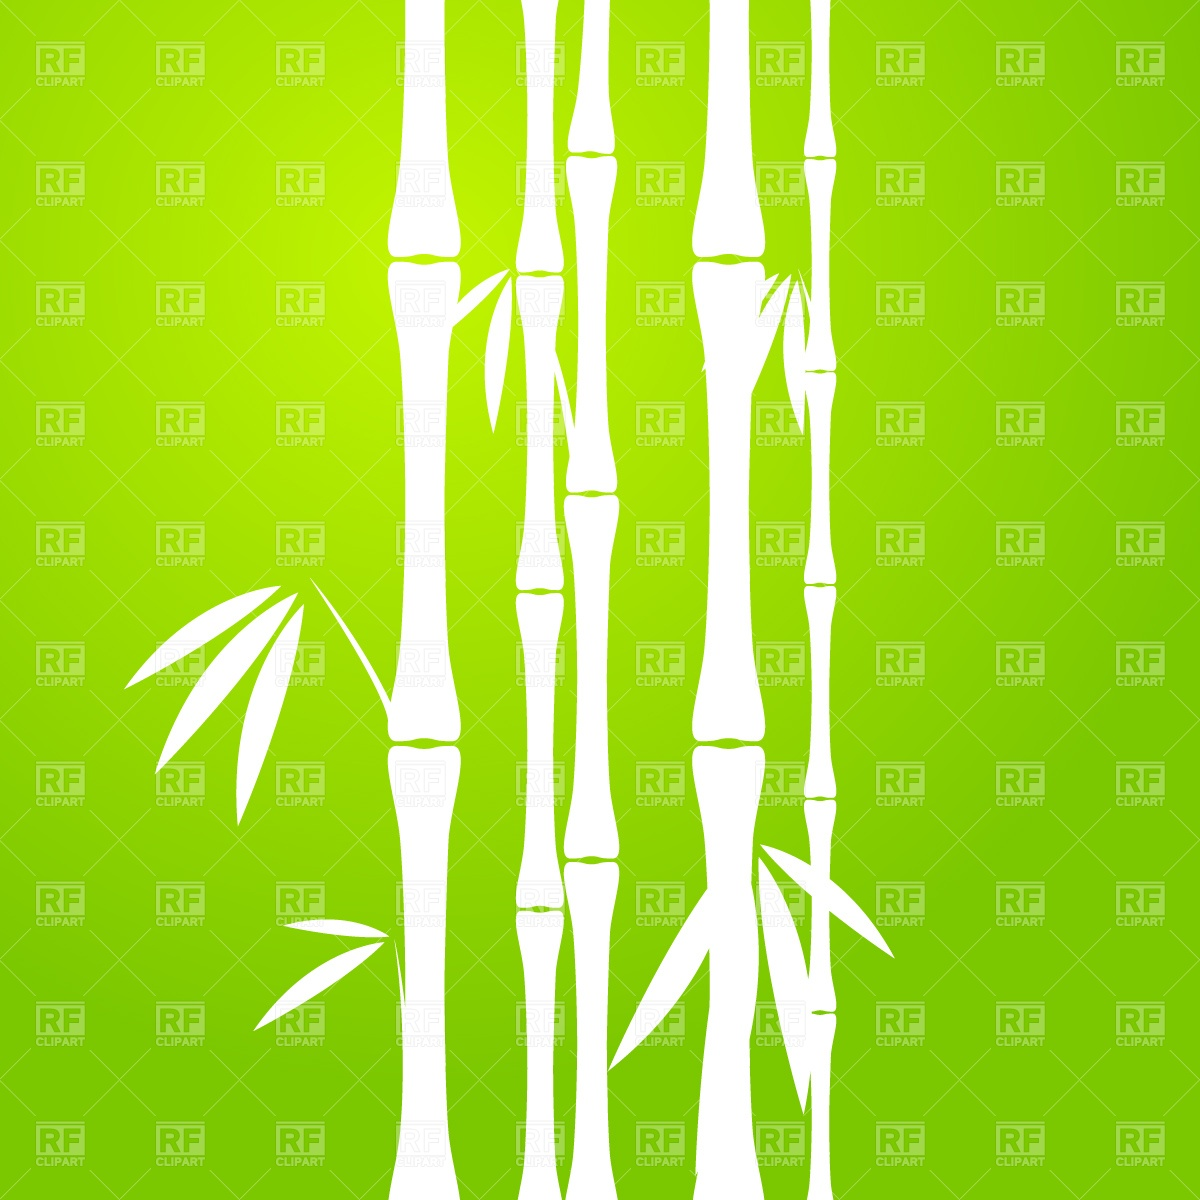 Green Background Clipart.